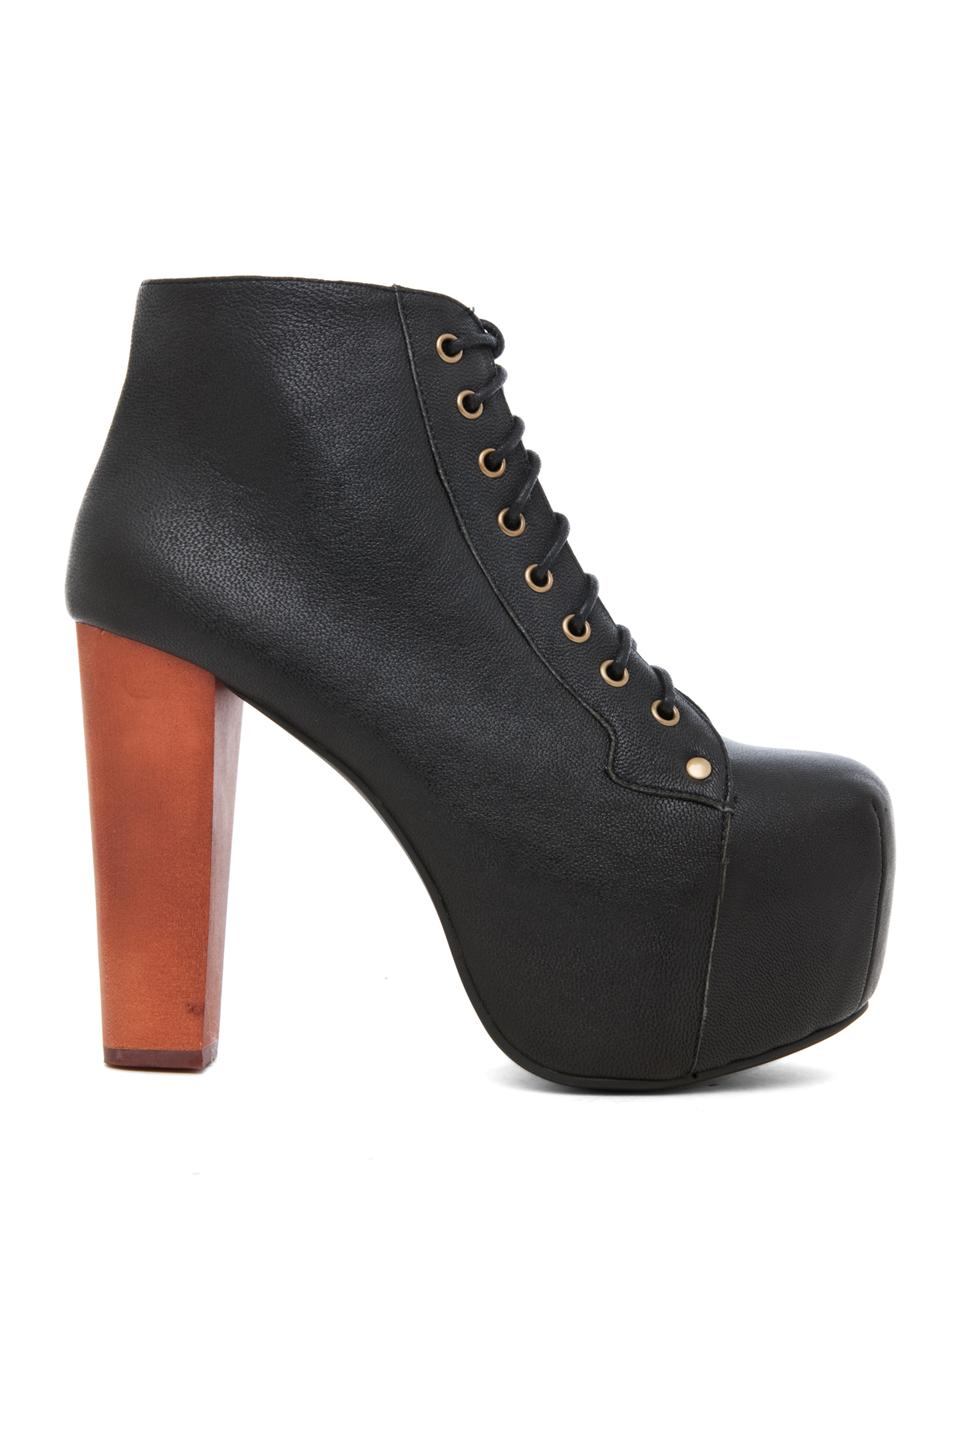 Jeffrey campbell lita platform lace up boot in black revolve - Jeffrey campbell lita platform boots ...